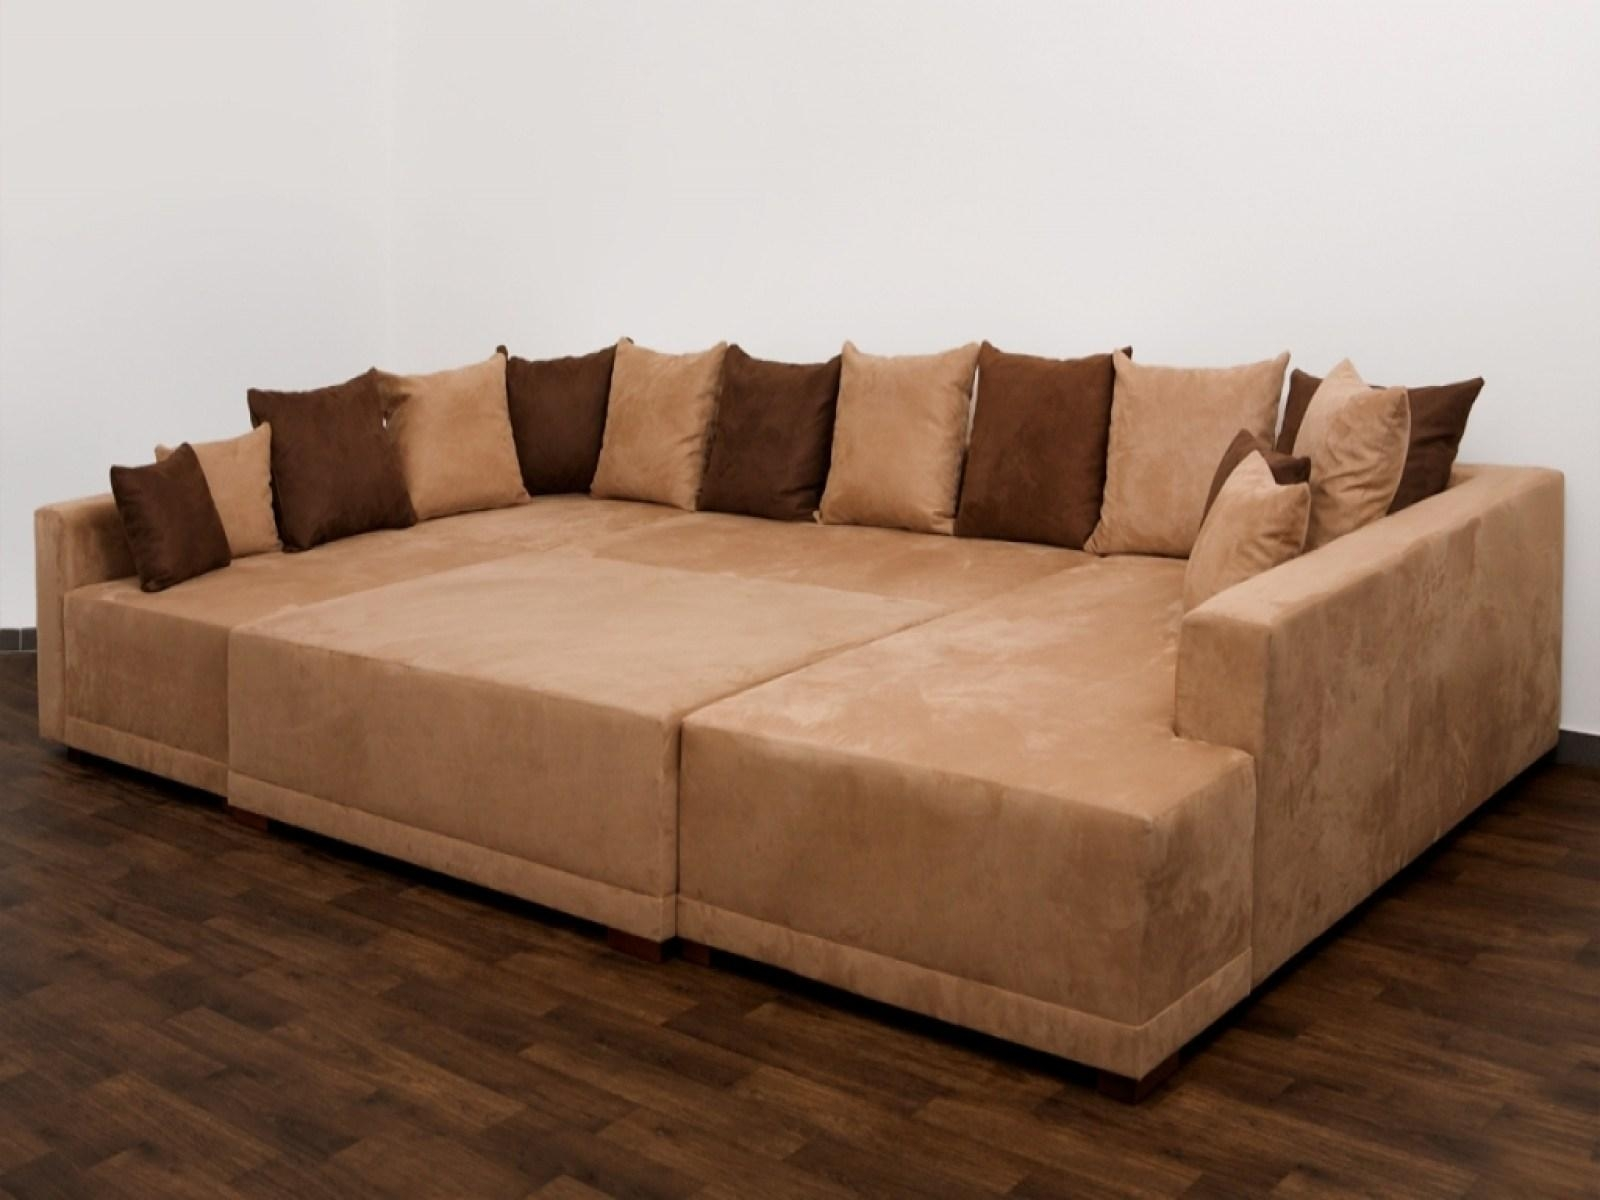 20 ideas of huge leather sectional sofa ideas. Black Bedroom Furniture Sets. Home Design Ideas